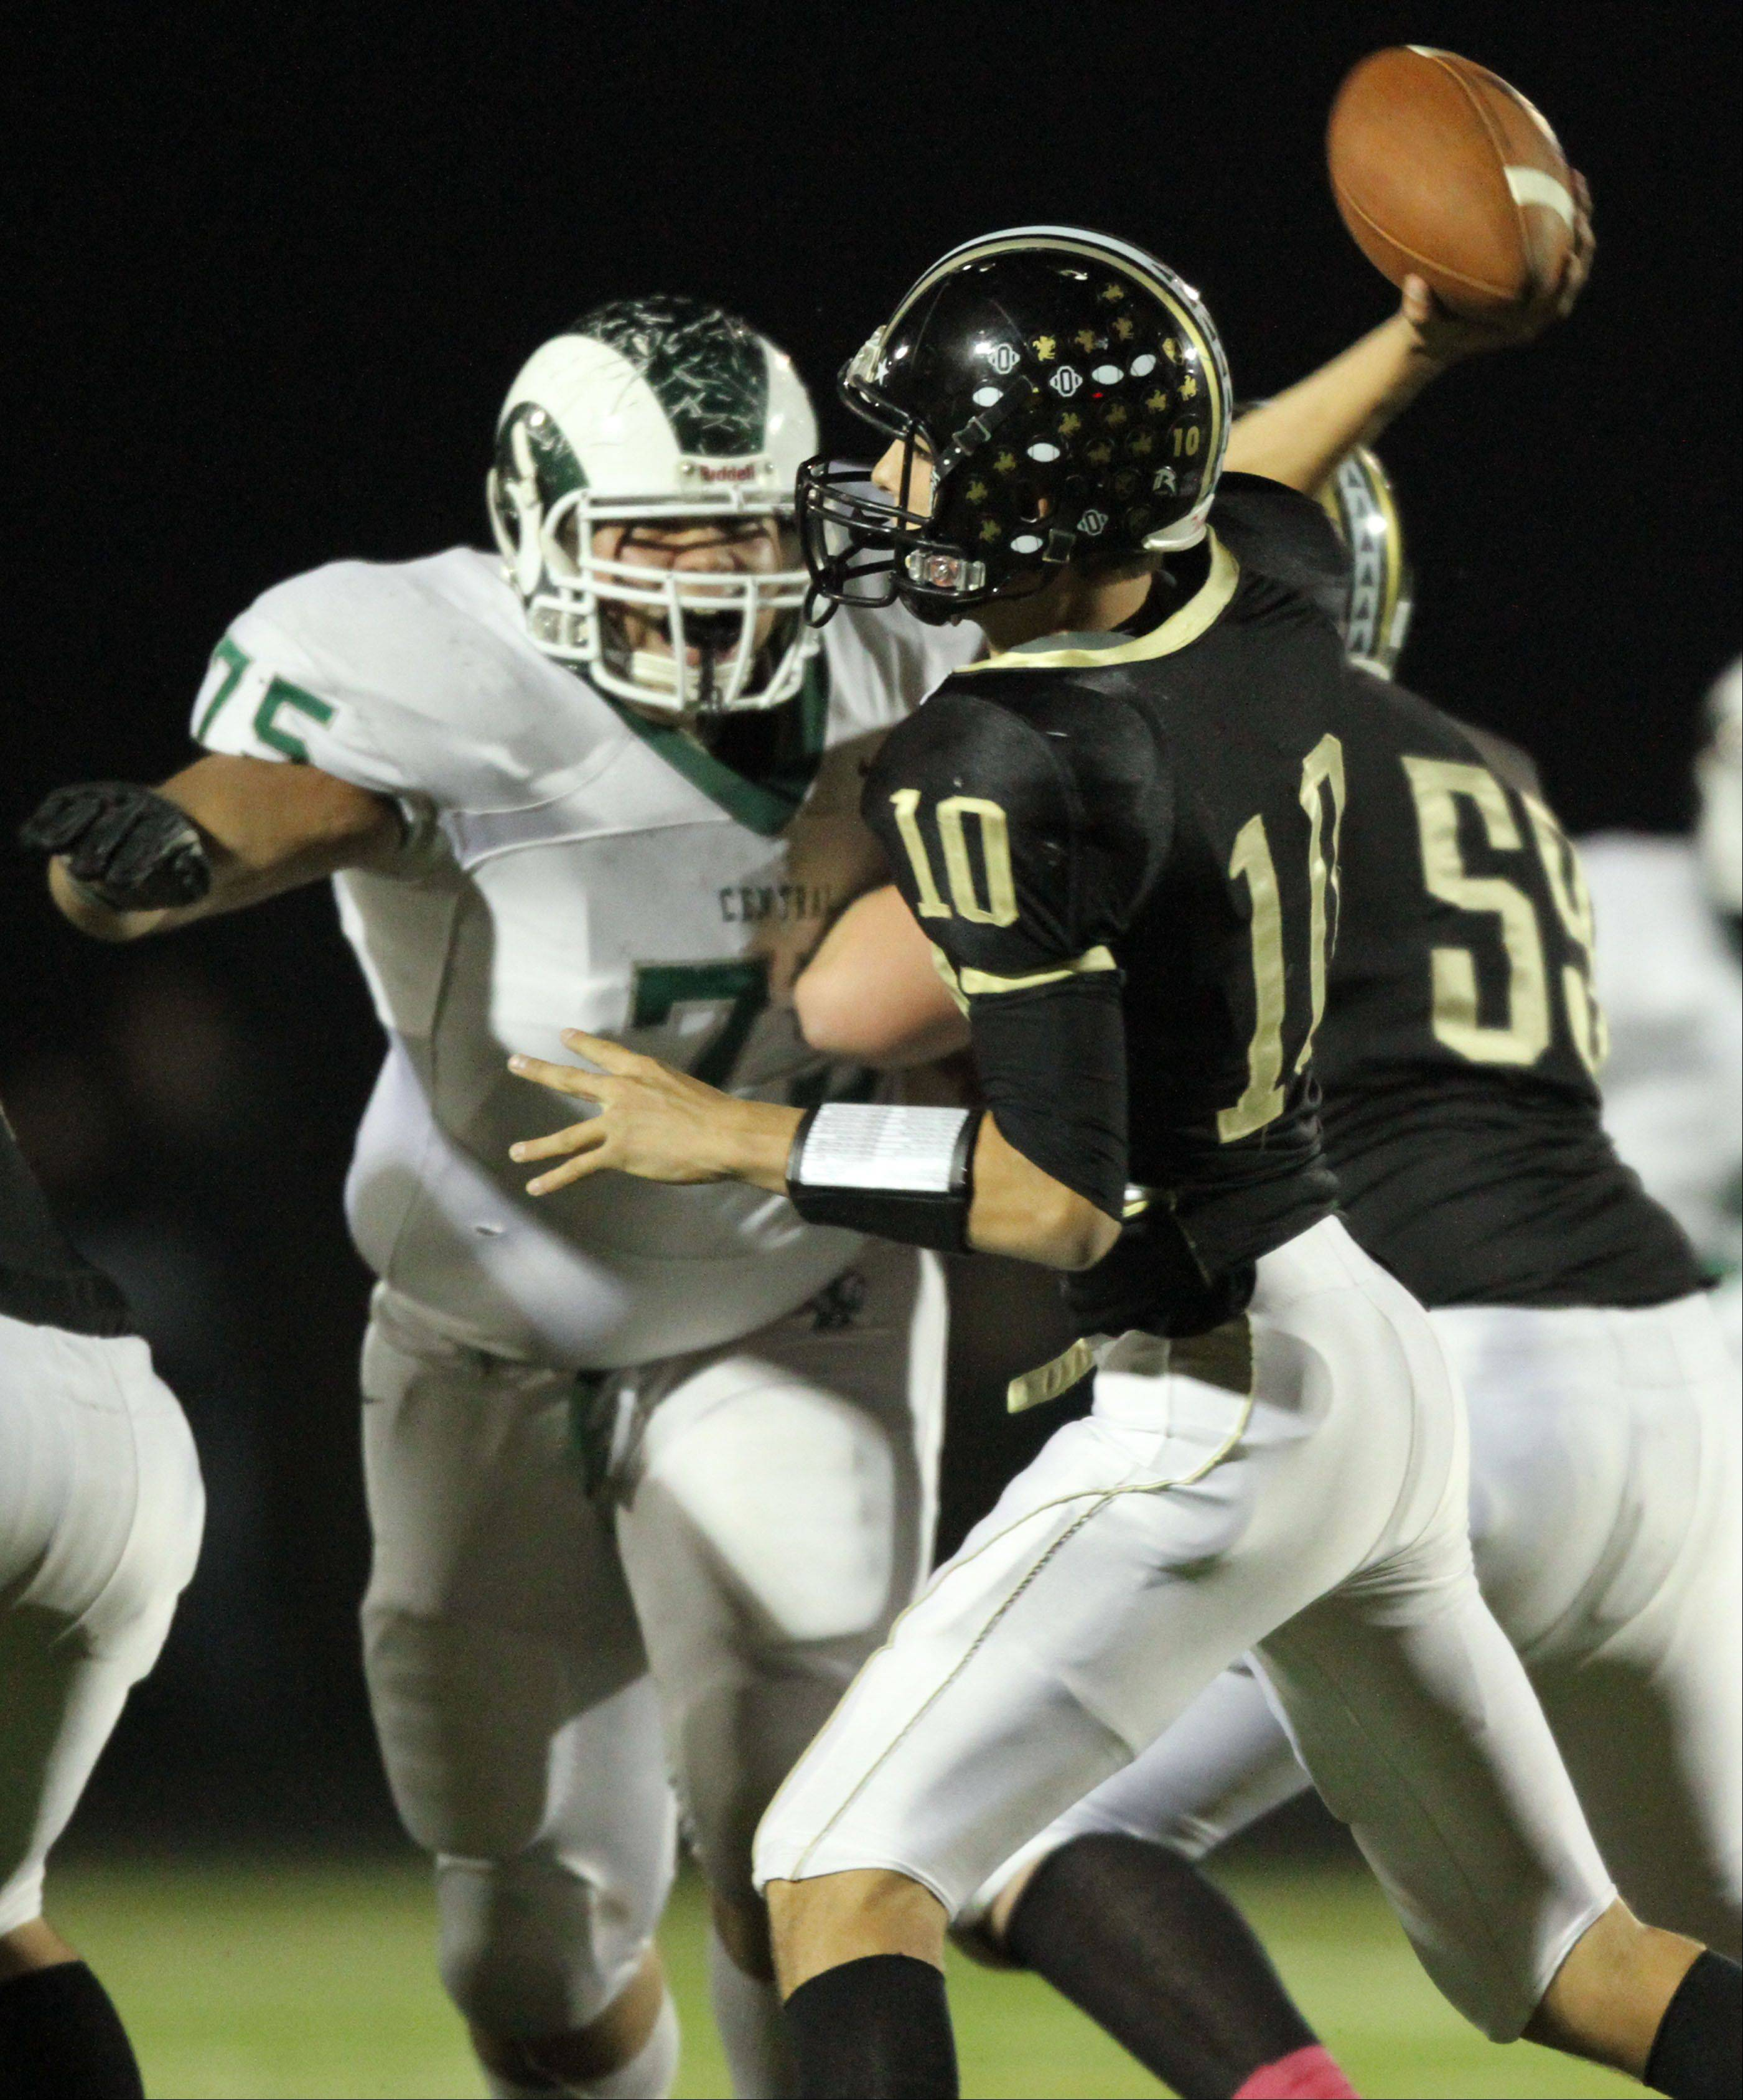 Grayslake North quarterback AJ Fish, here competing against Grayslake Central last fall, is helping the Knights' no-huddle offense reach new heights this season.